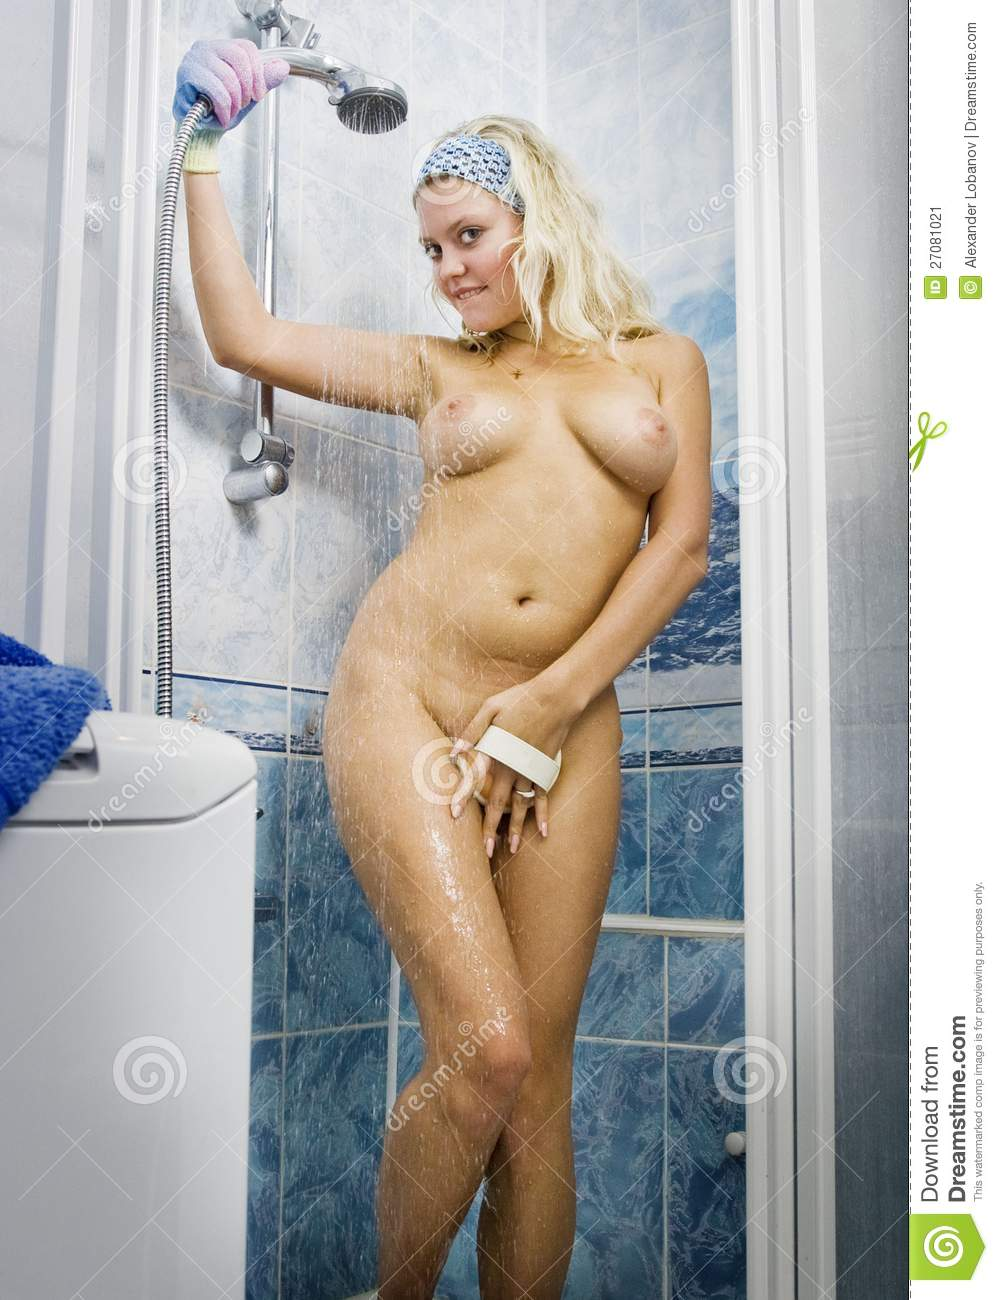 In shower naked woman